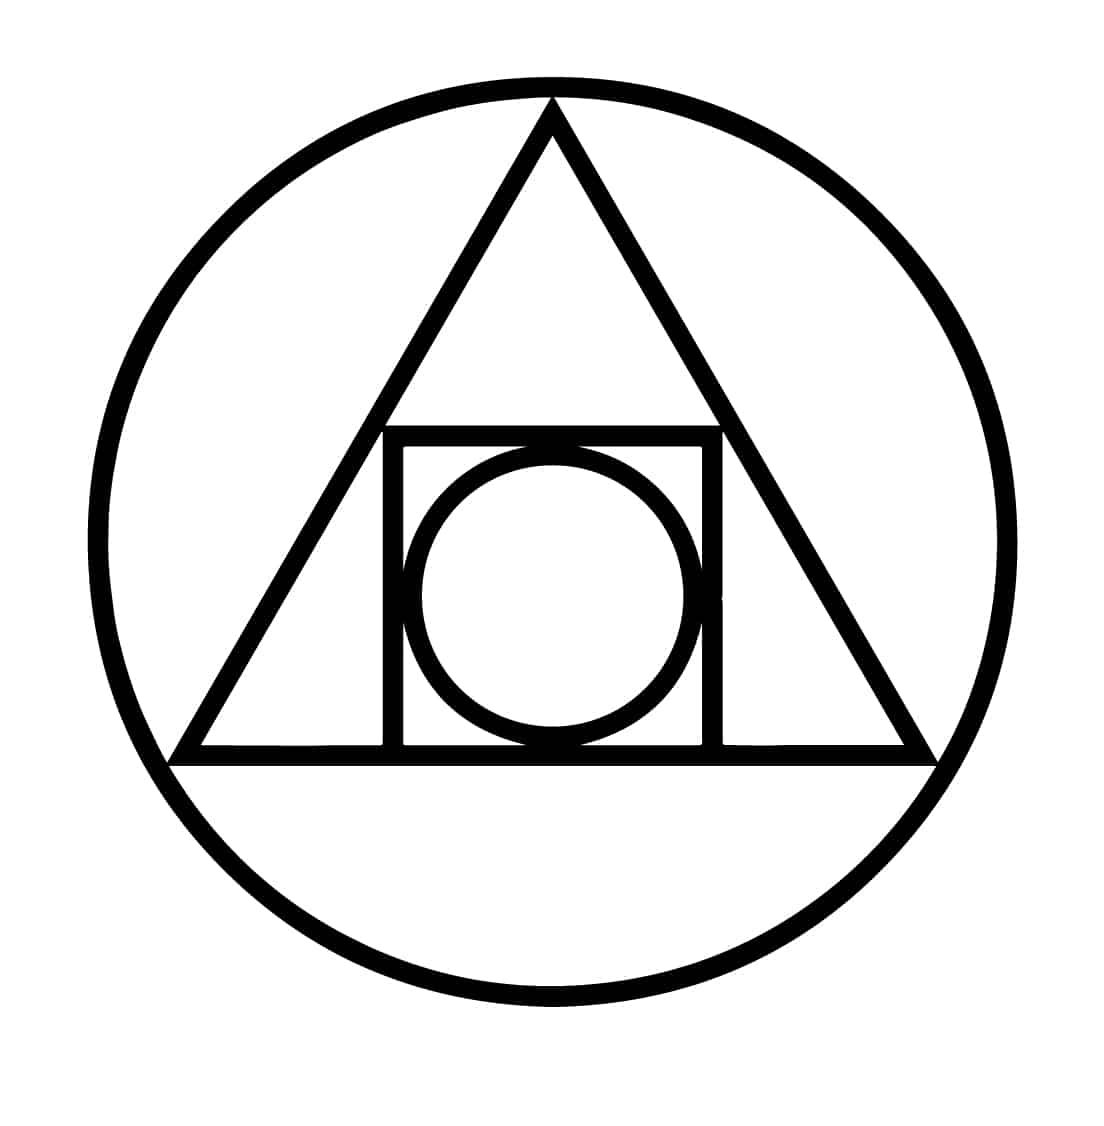 Alchemy symbols and their meanings the extended list of alchemy symbols and their meanings the extended list of alchemical symbols biocorpaavc Image collections